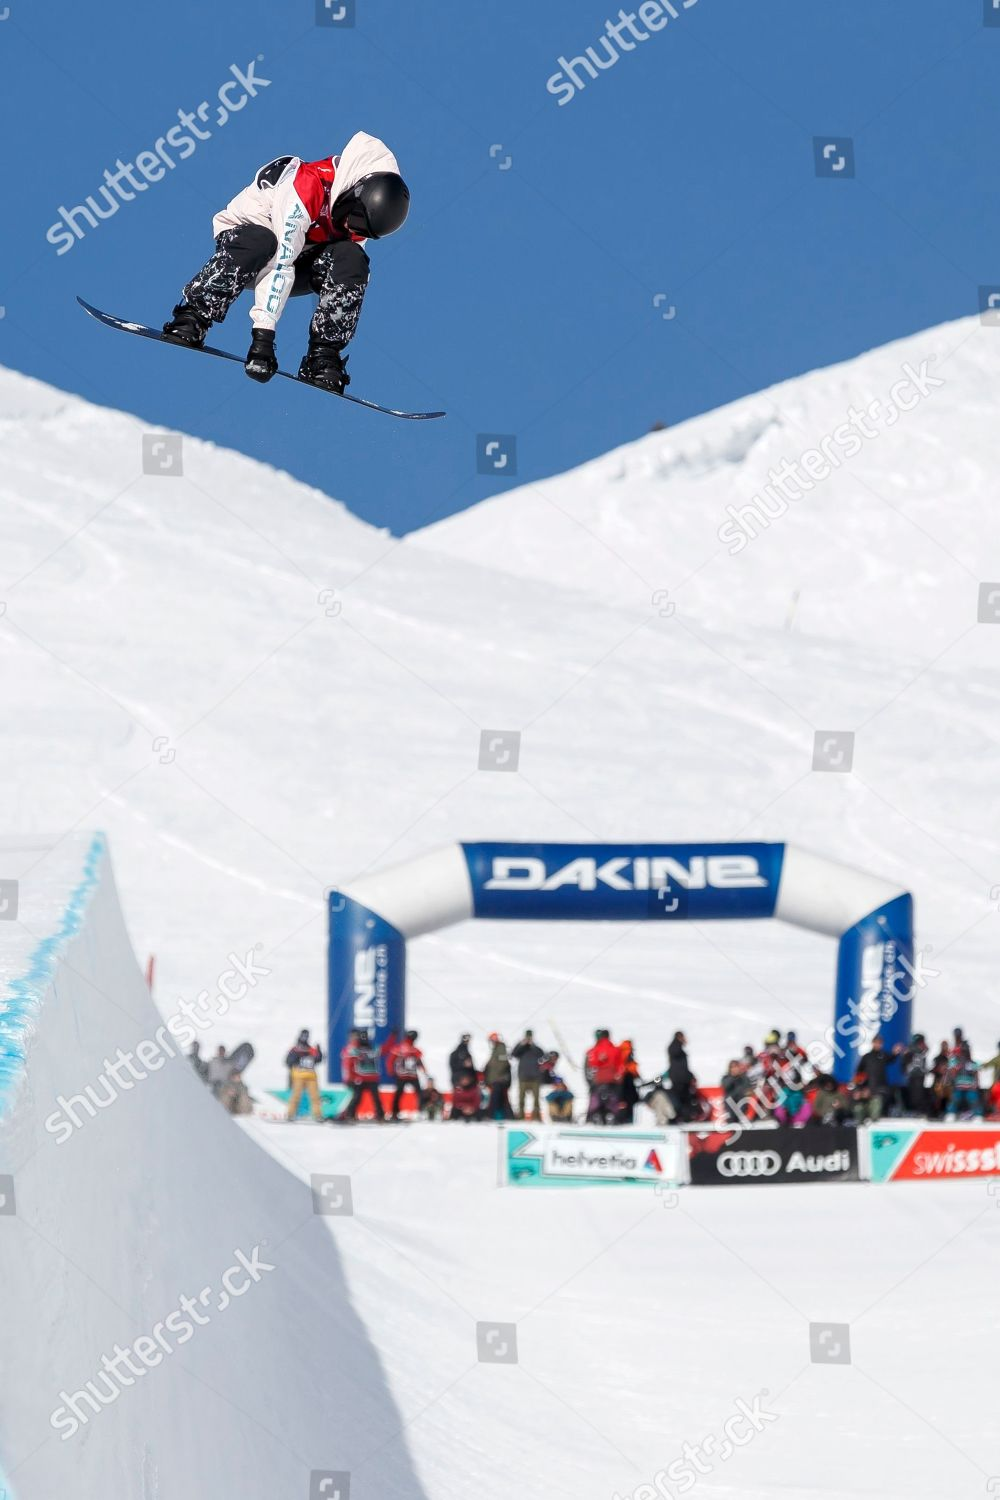 Snowboarding At The 2020 Olympic Winter Games.Snowboarder Action On Site Snowpark Freestyle Lausanne